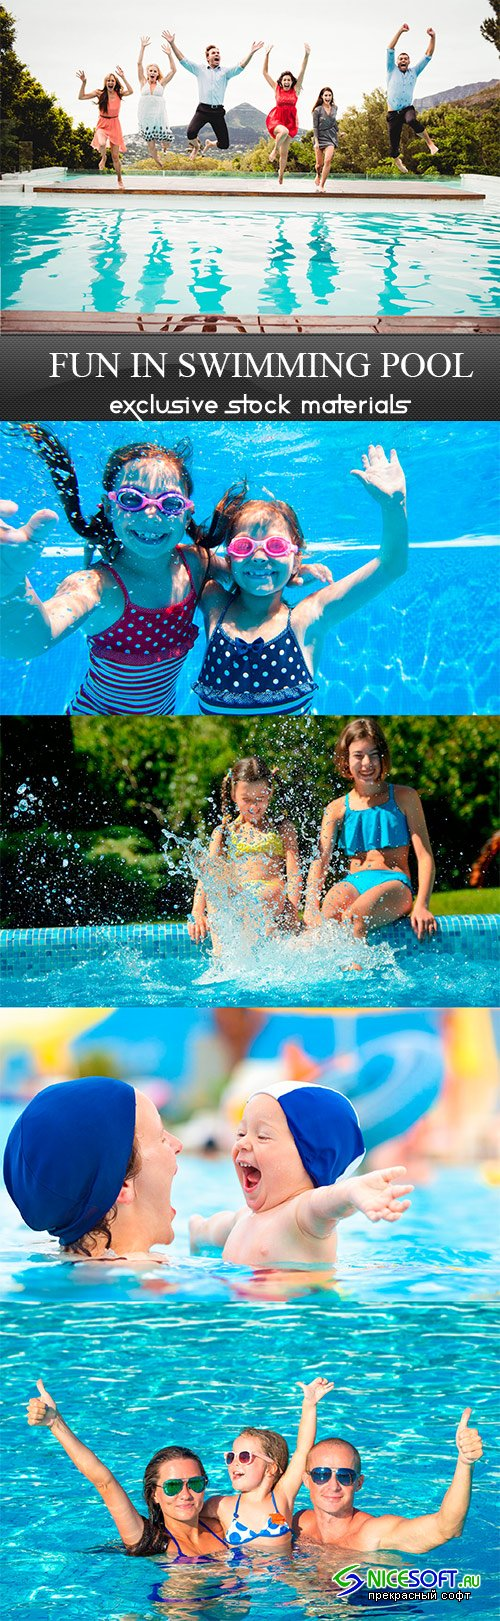 Fun in swimming pool - 5UHQ JPEG